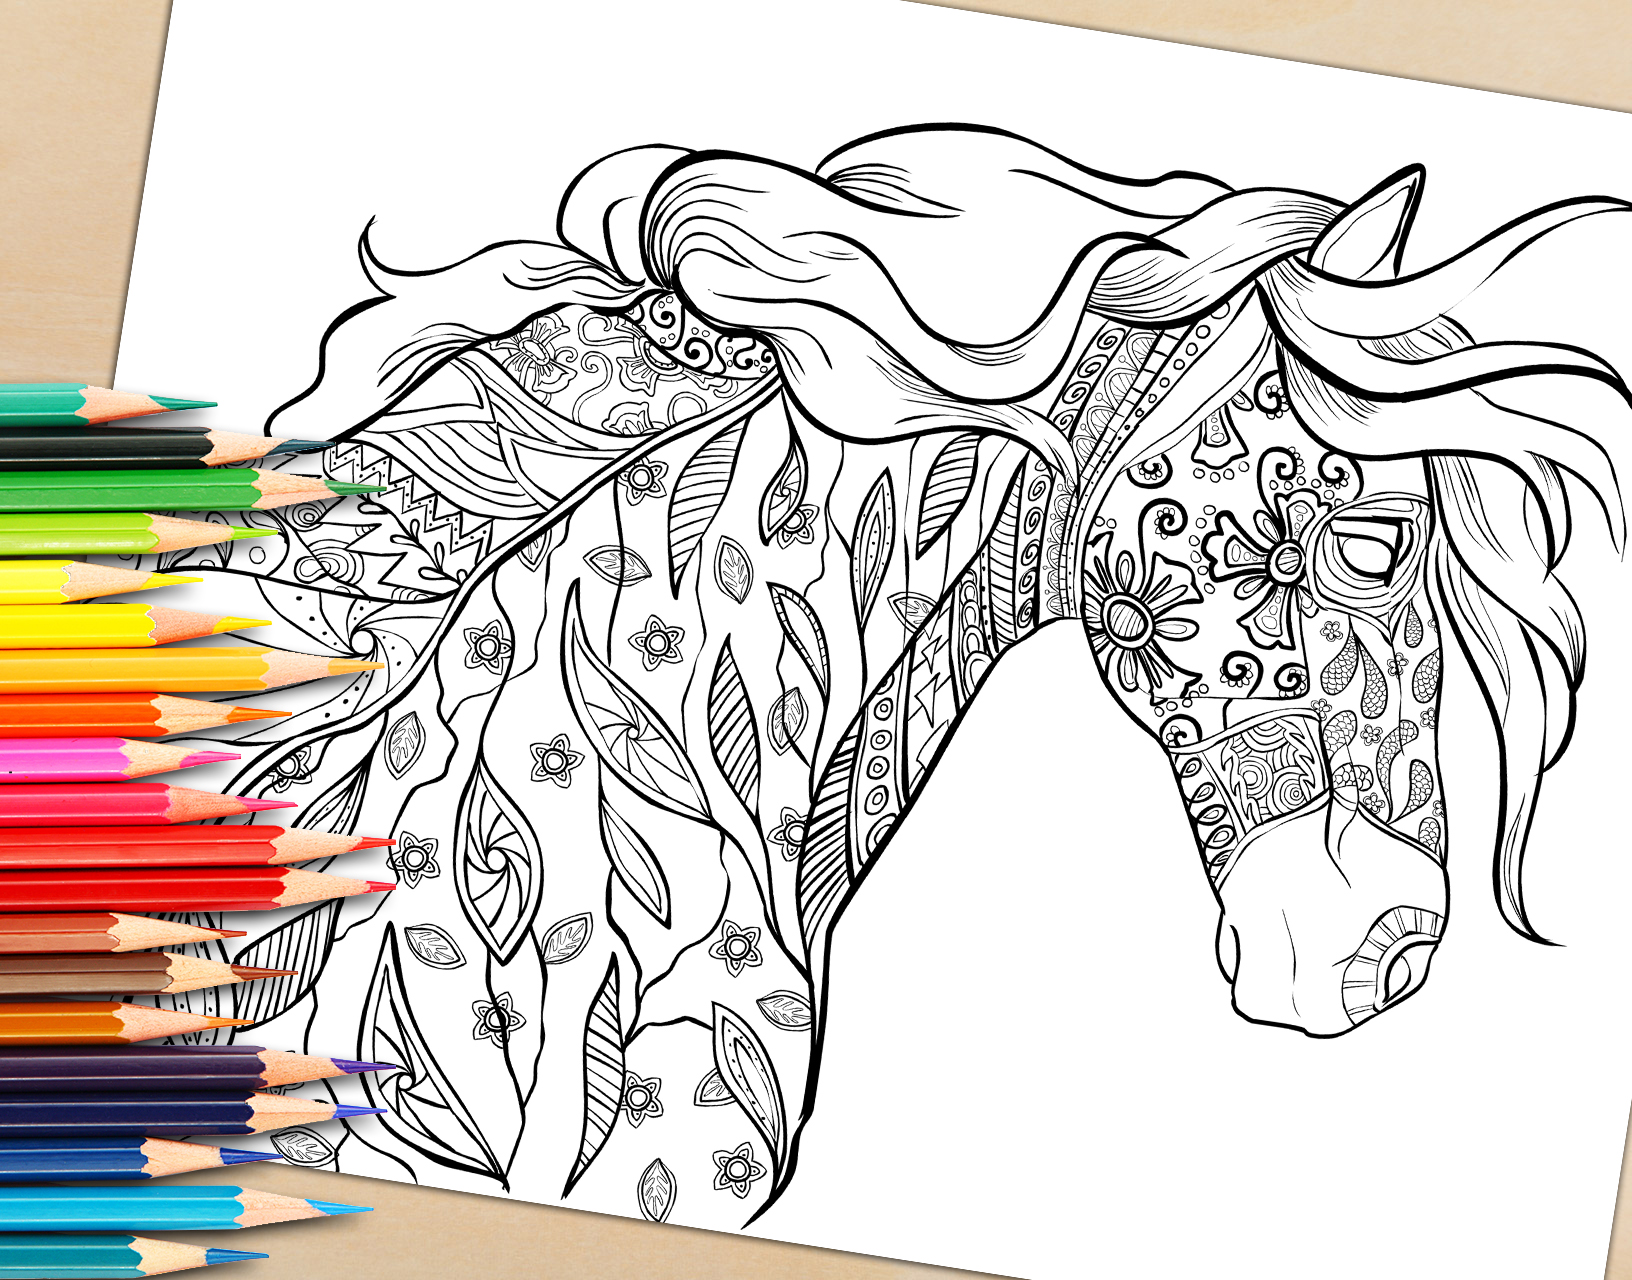 Adults colouring book pages - Adult Coloring Book Page Decorative Horse Coloring Page For Download